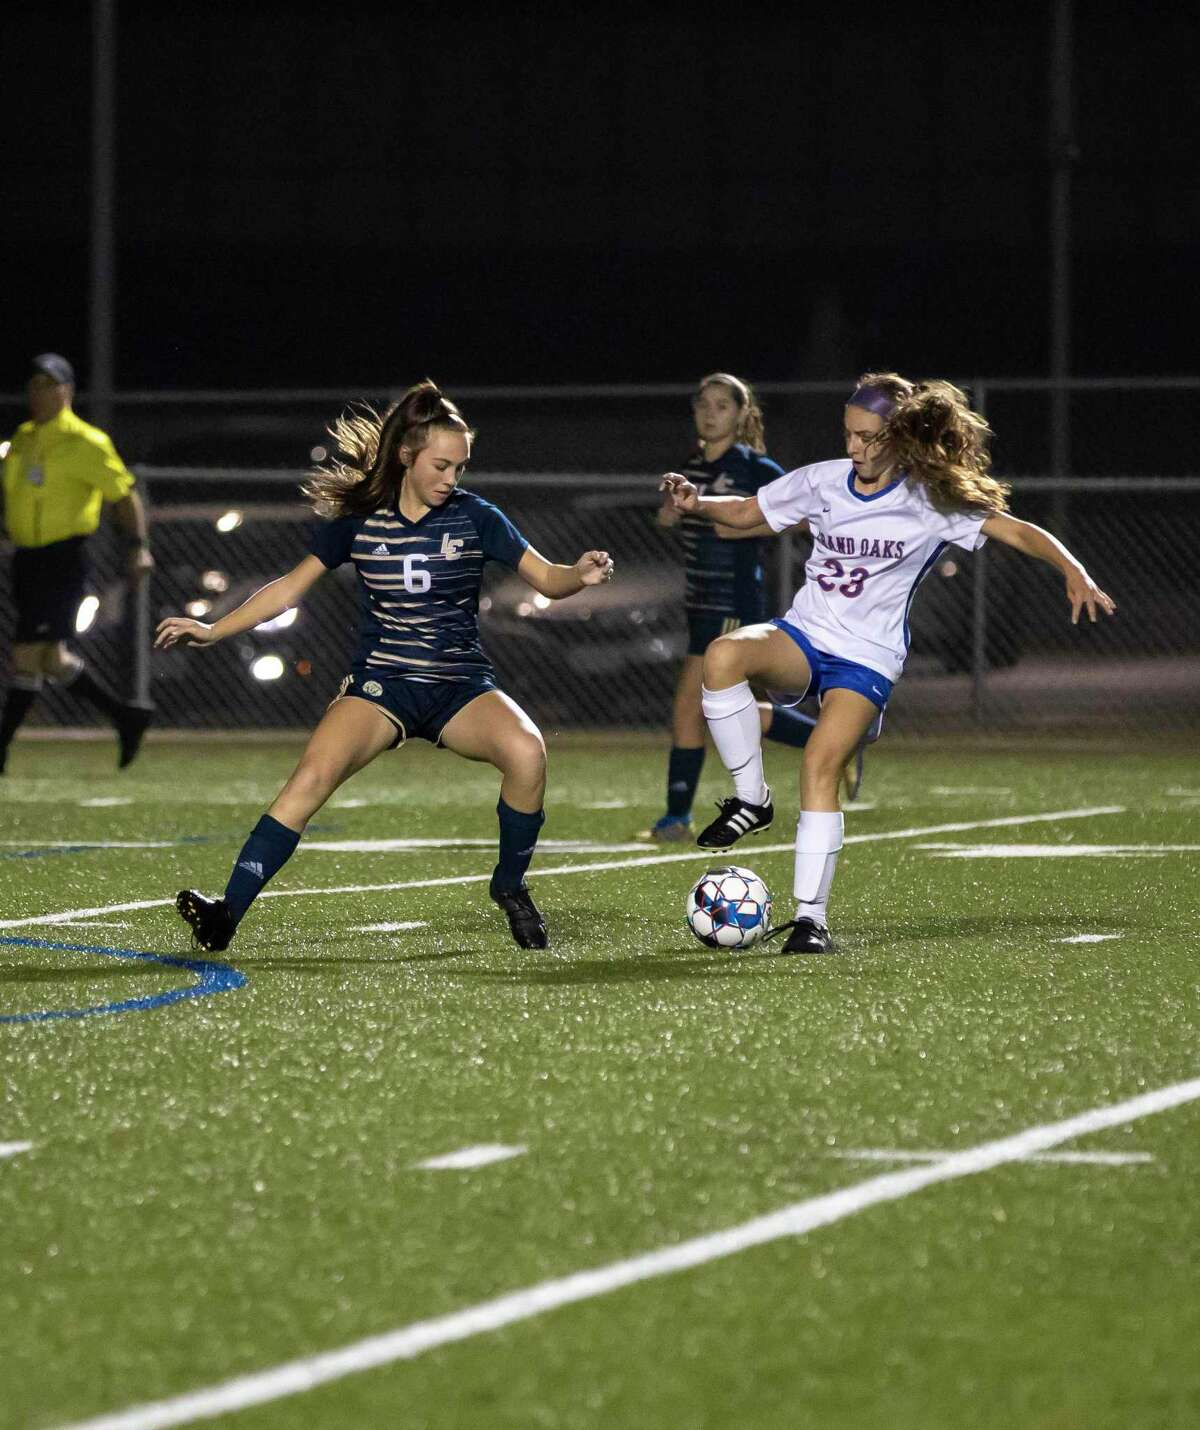 Lake Creek midfielder Morgan McGee (6) and Grand Oaks defender Lauren Moylan (23) fight for control of the ball in a District 20-5A girls soccer game in Montgomery on Friday, January 17, 2020.